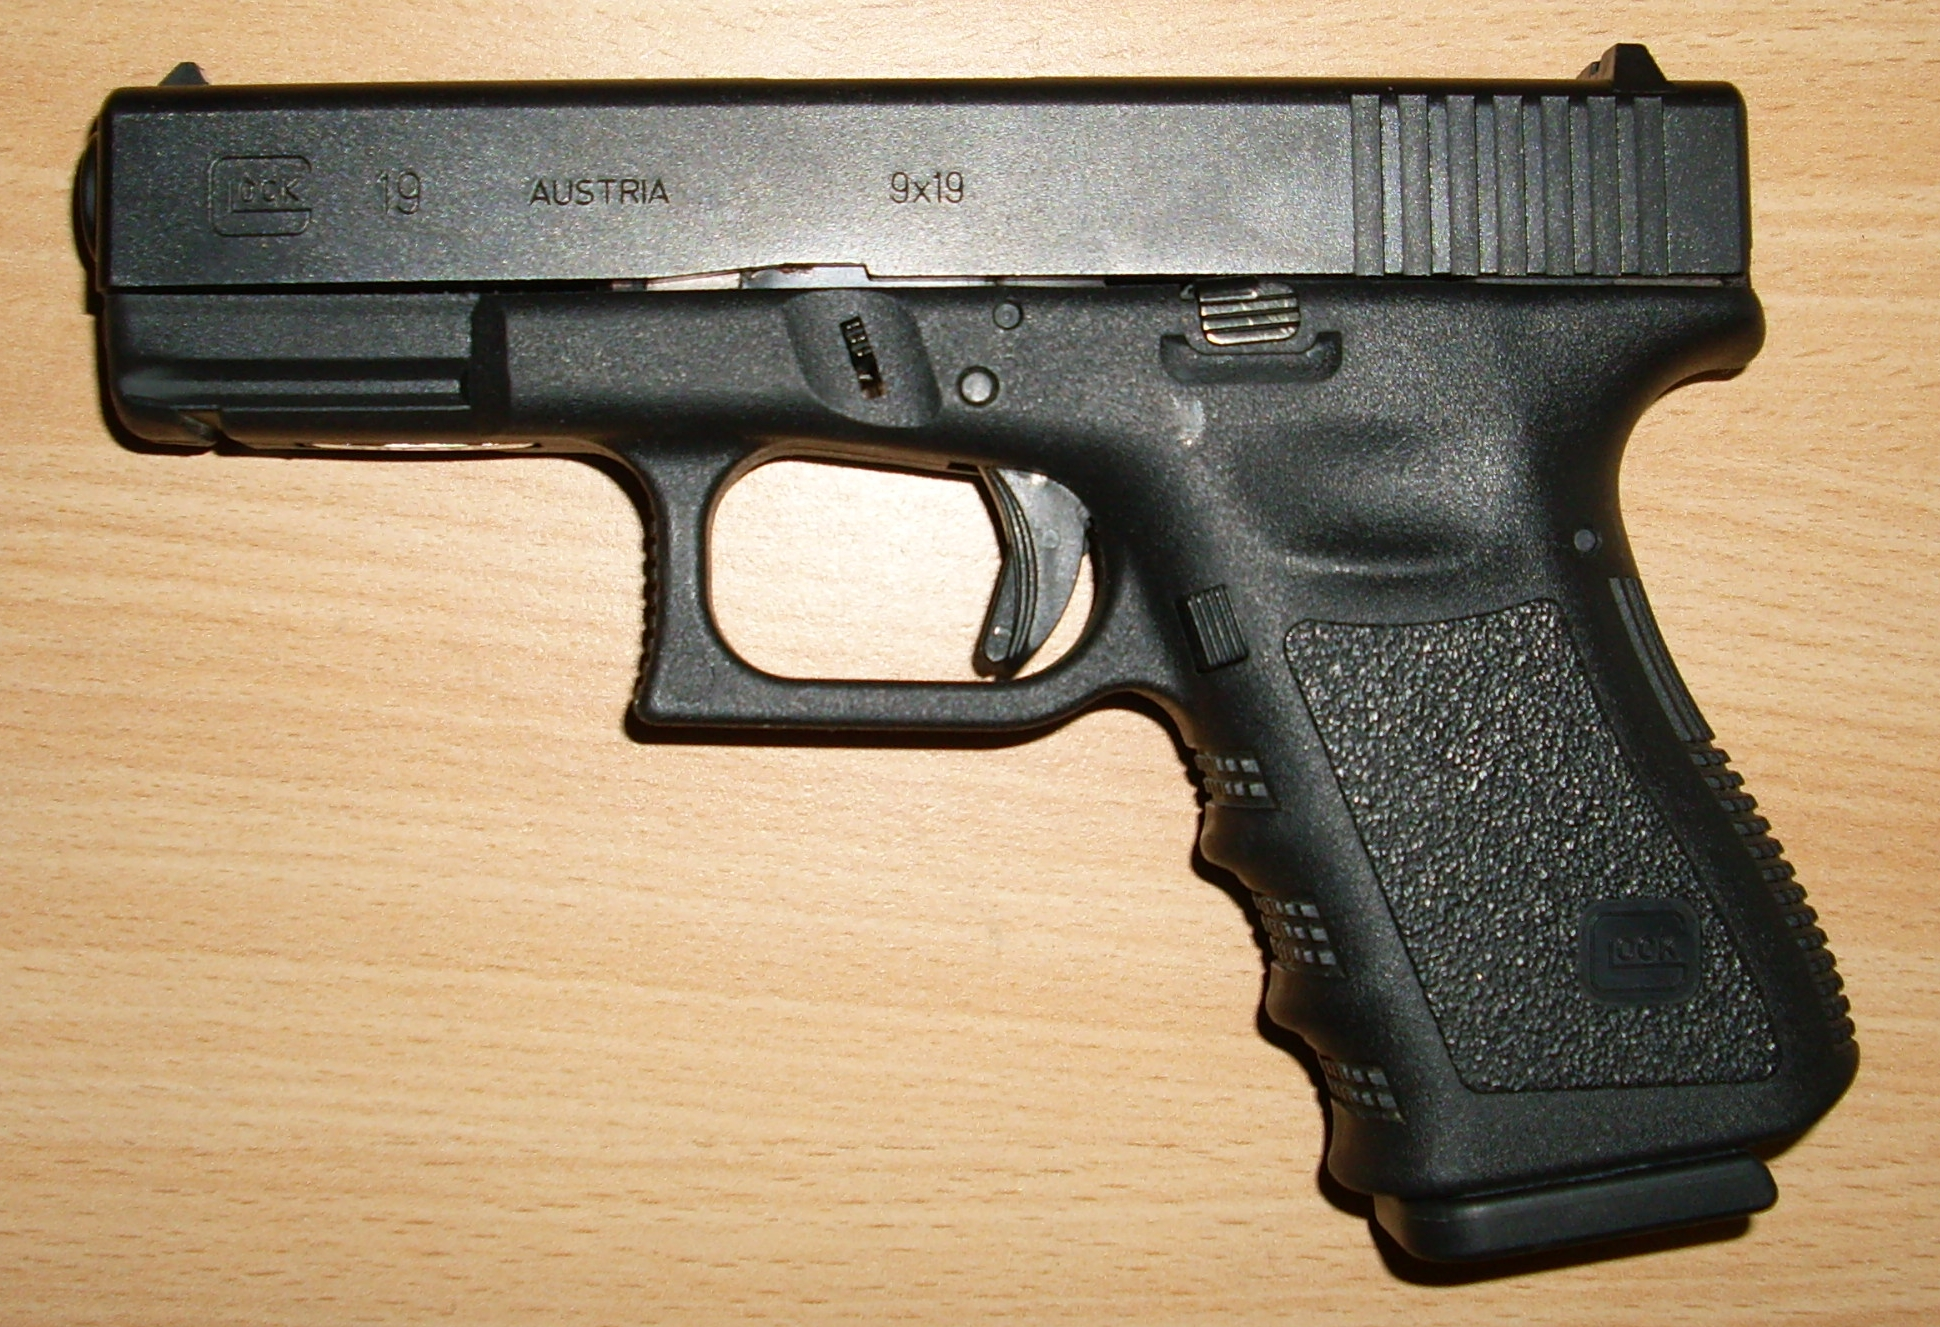 http://upload.wikimedia.org/wikipedia/commons/2/28/GLOCK_19.JPG